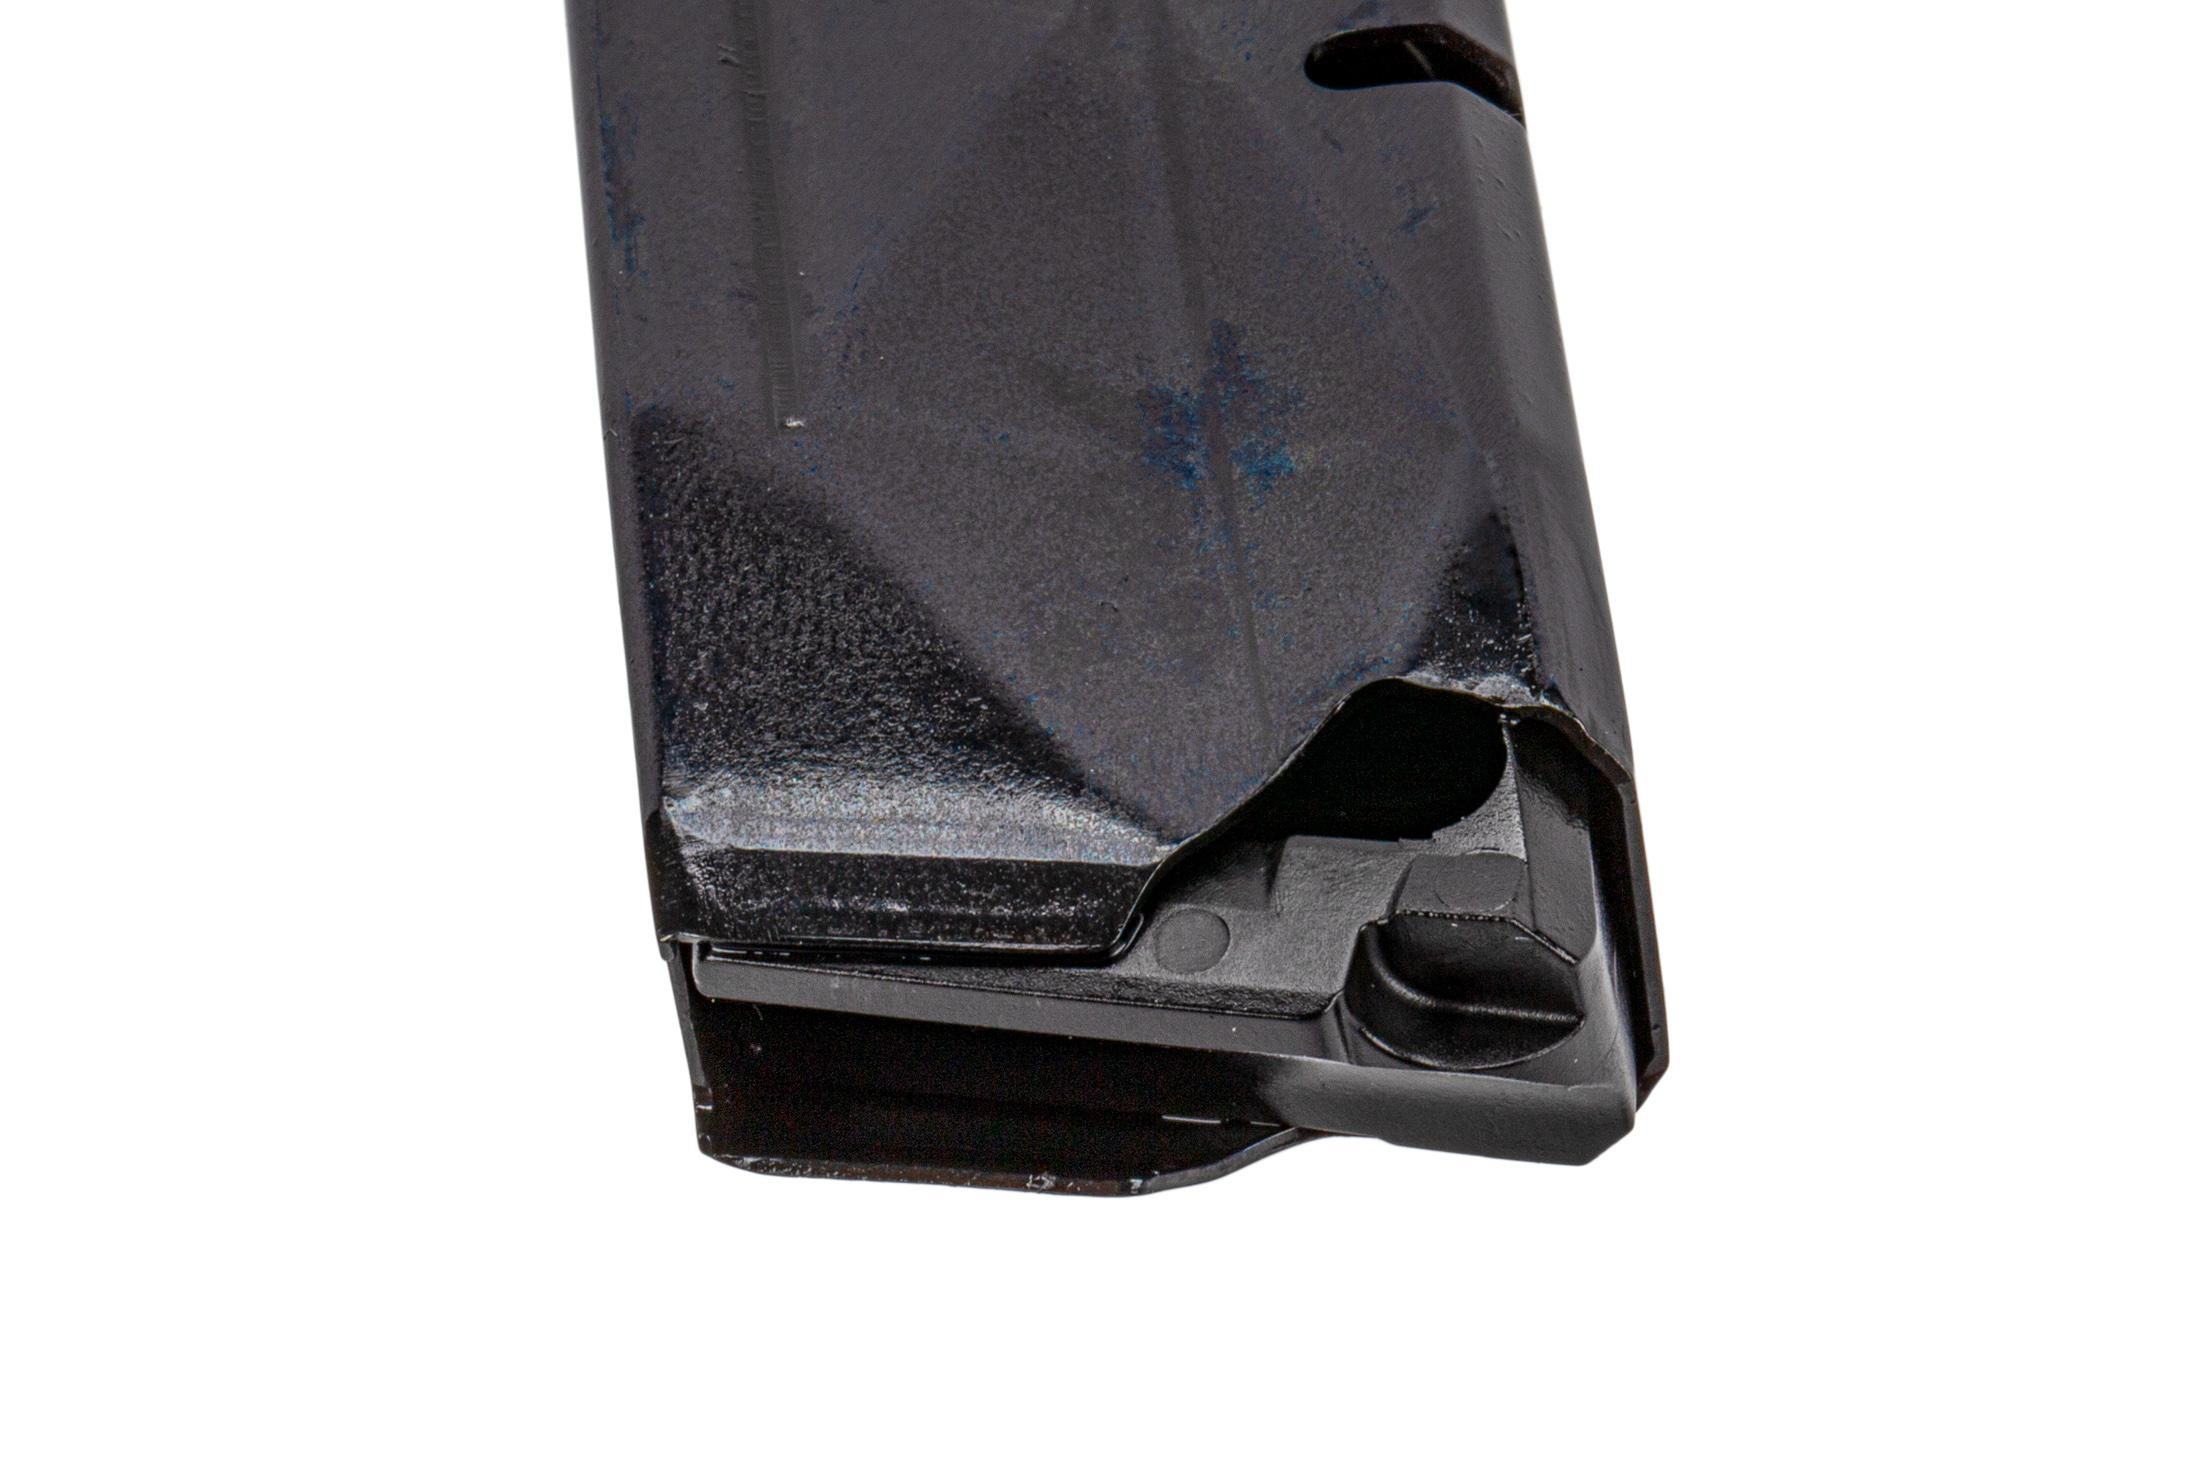 CZ USA full capacity CZ 75 Tac Sport 9mm 20-round magazine with durable finish and high reliable follower.